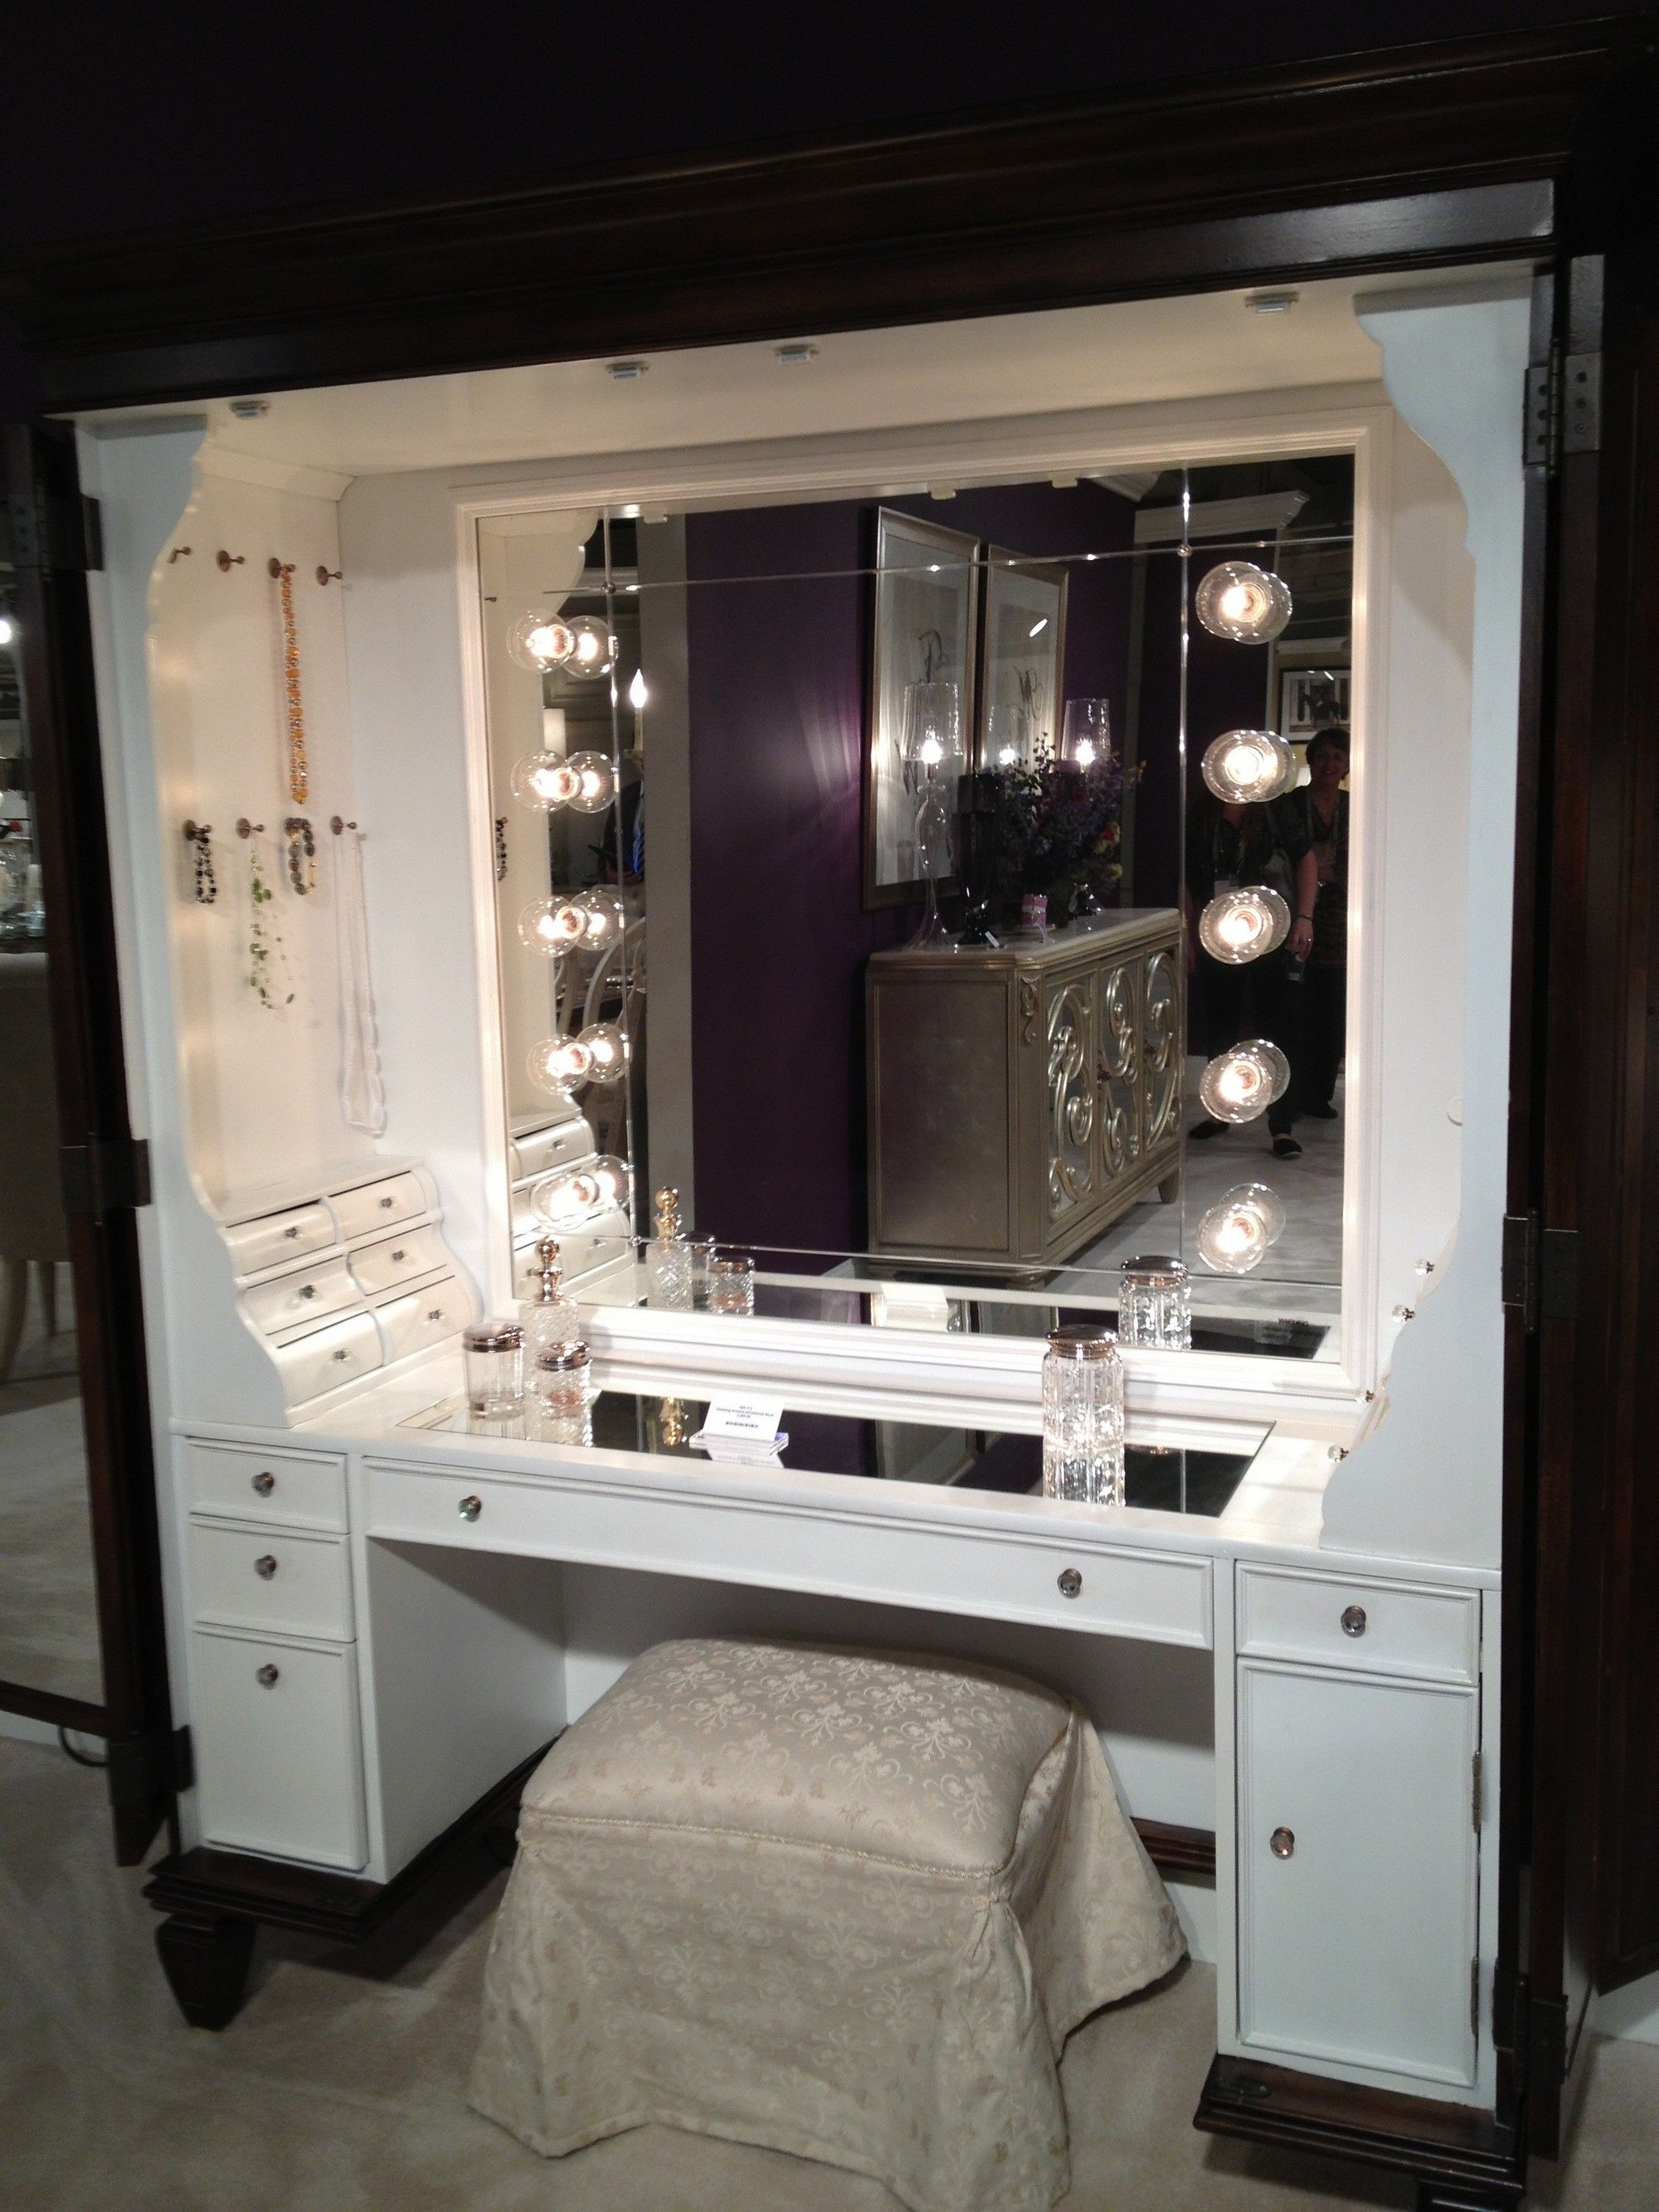 Big Vanity Mirror With Lights Awesome Furniture Black Makeup Table With Lighted Mirror And Small Fabric Inspiration